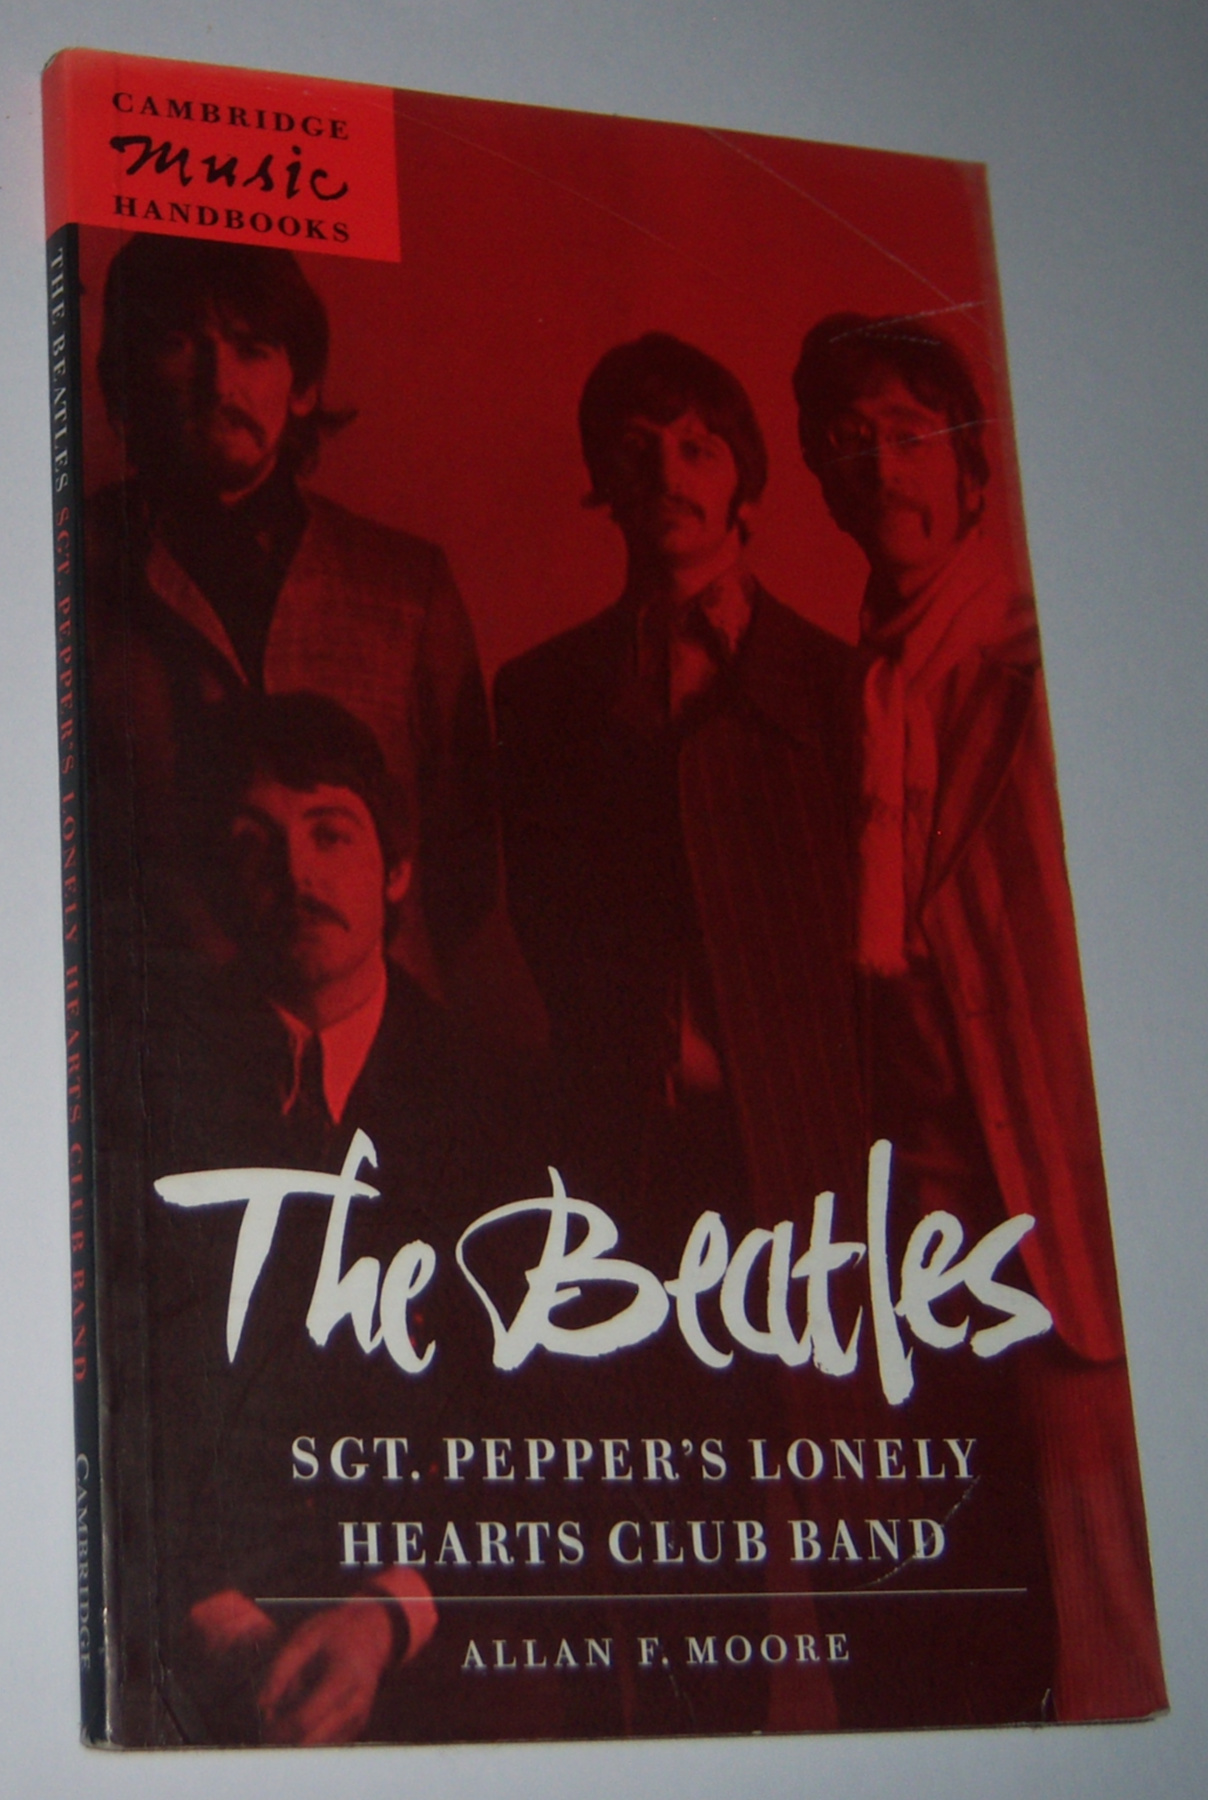 Image for THE BEATLES: Sgt. Pepper's Lonely Hearts Club Band